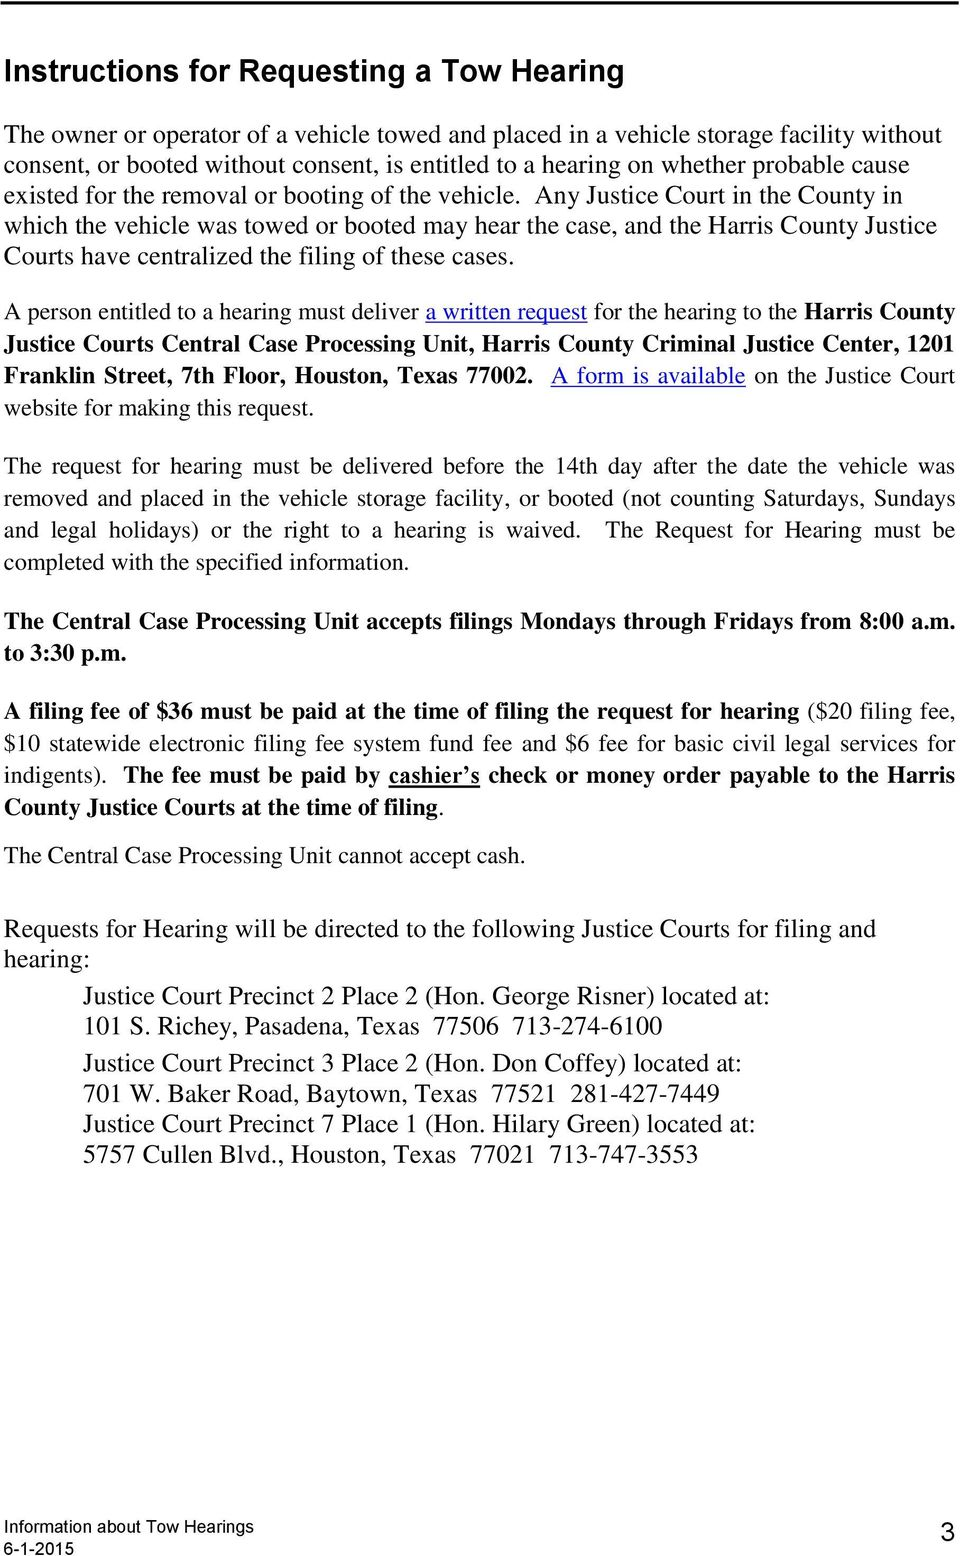 Any Justice Court in the County in which the vehicle was towed or booted may hear the case, and the Harris County Justice Courts have centralized the filing of these cases.